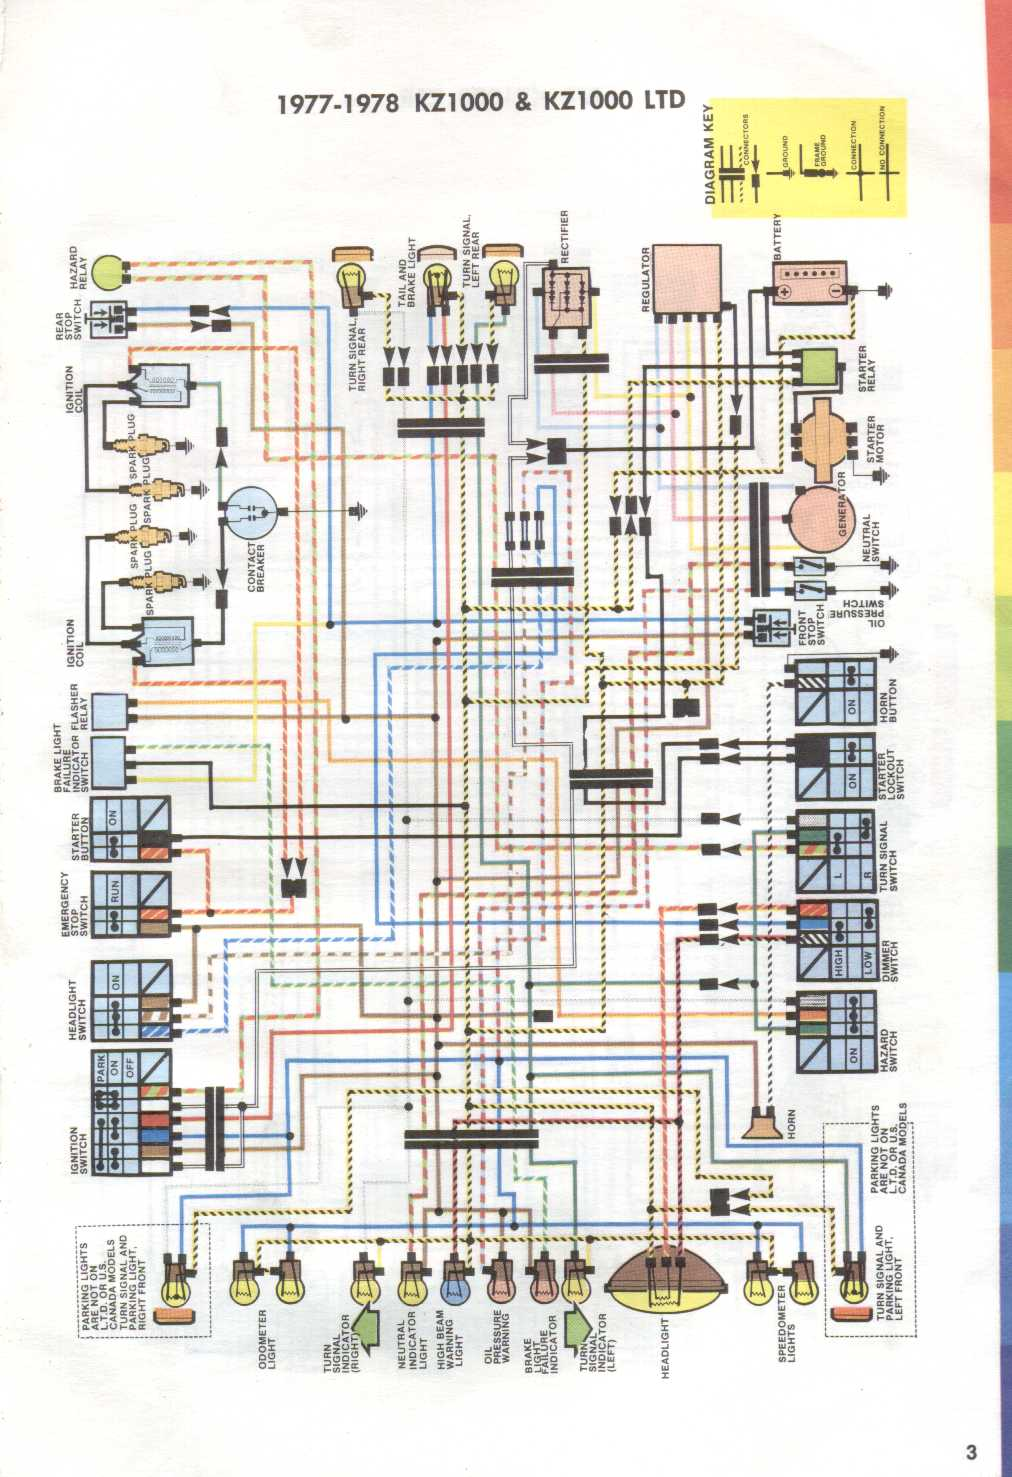 Wiring diagram for 1977 1978 kawasaki kz1000 and kz1000ltd mar 30 asfbconference2016 Images